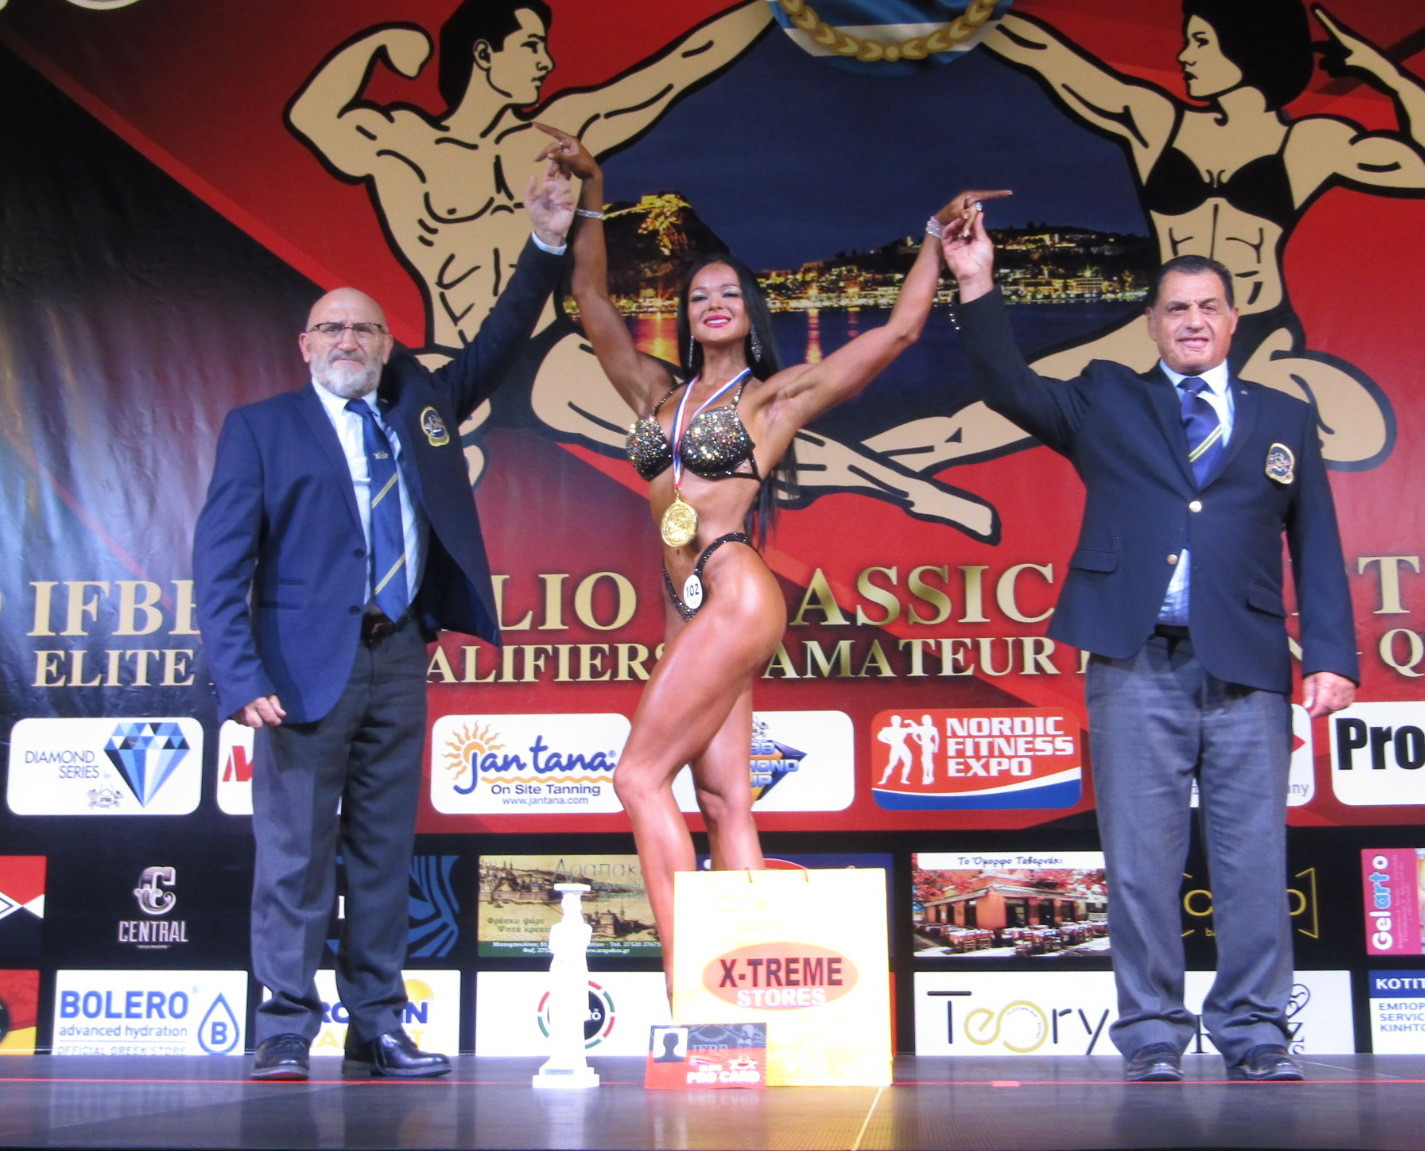 IFBB hail successful hosting of Nafplio Classic